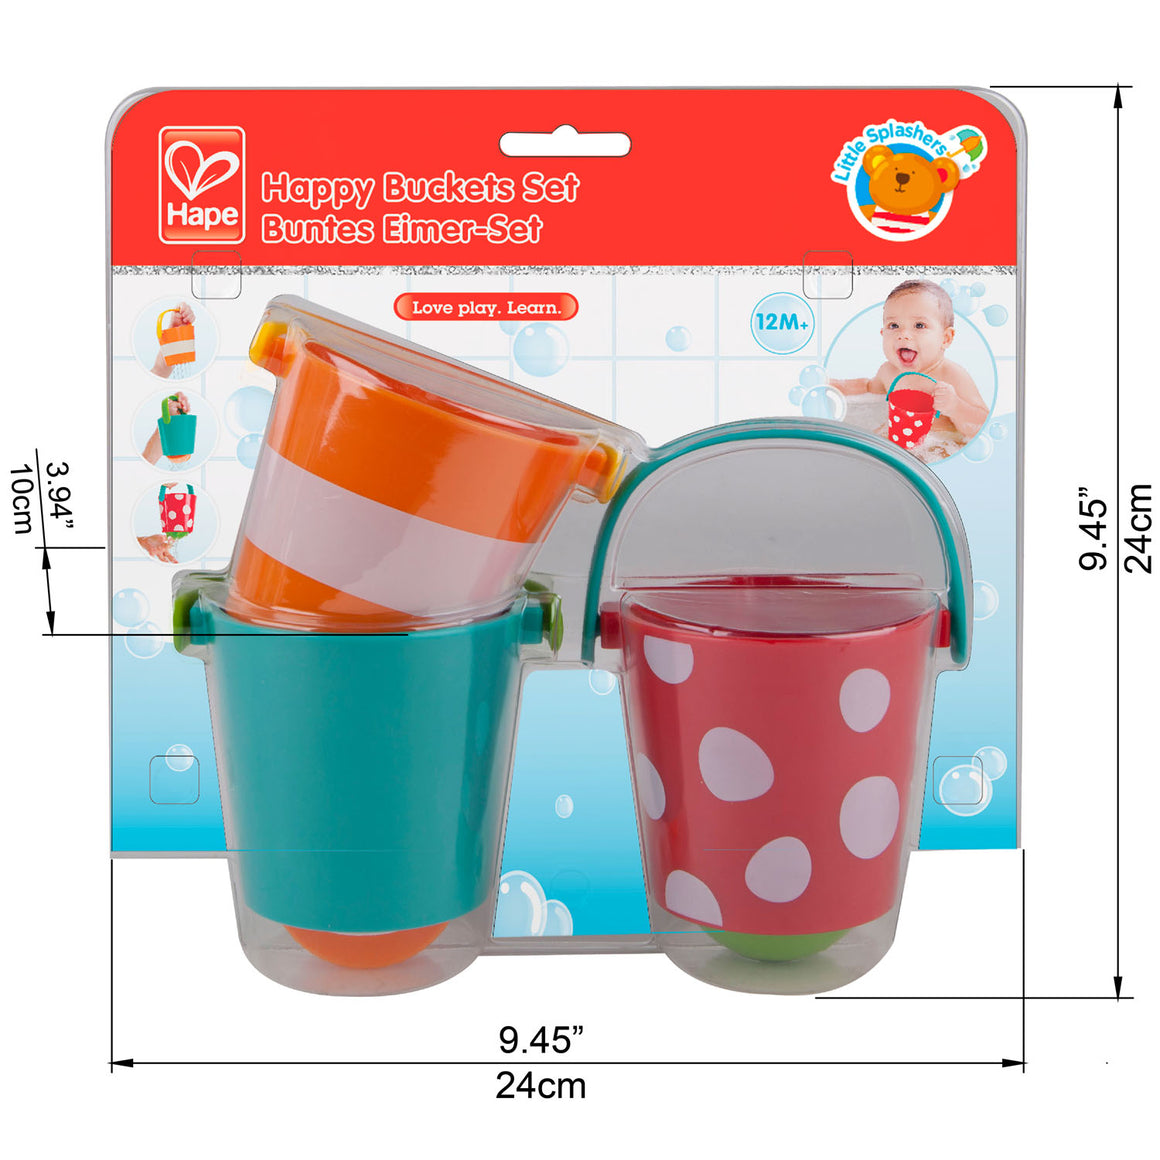 Hape set of three colorful Happy Buckets Bath Toy set